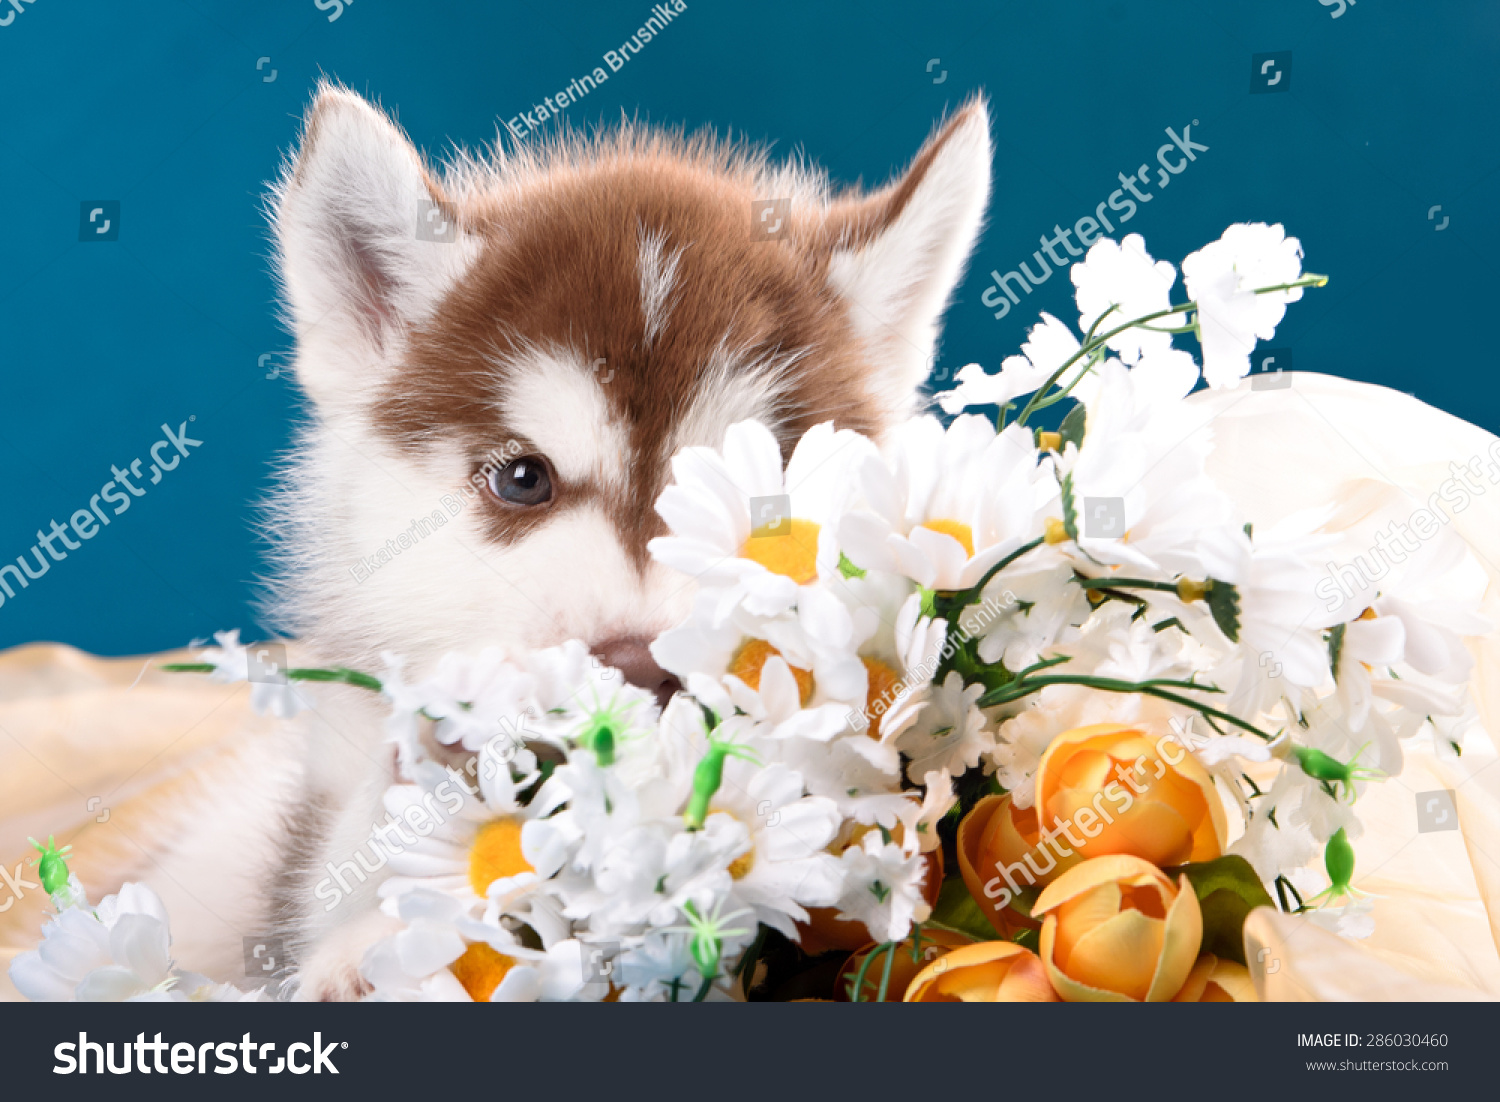 Funny Puppy Bouquet Flowers Wishes Happy Stock Photo Royalty Free